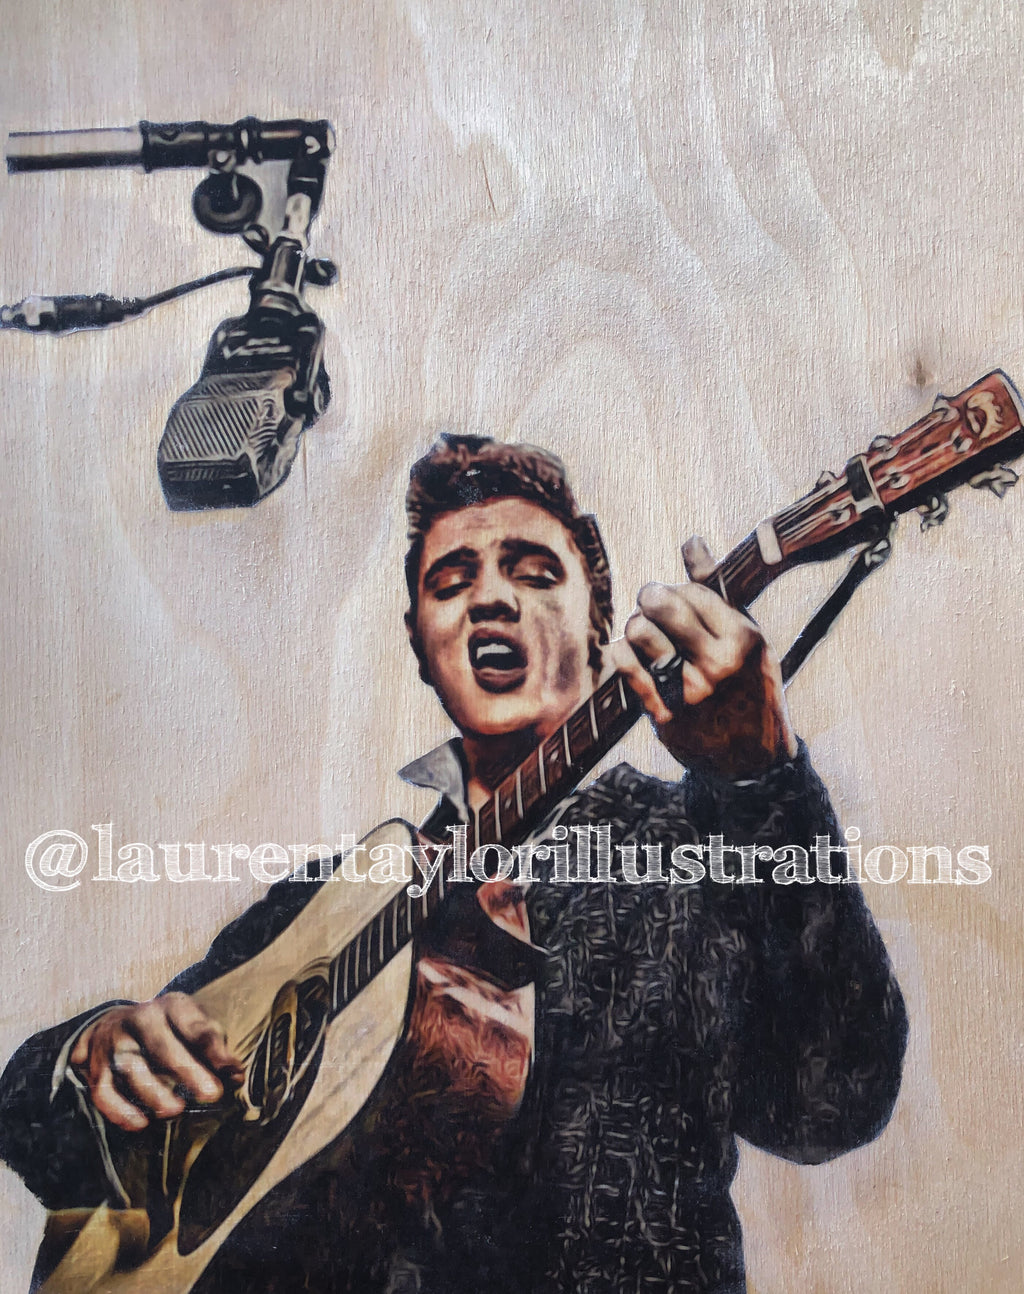 """Elvis"" 1/1 Original on Wood"